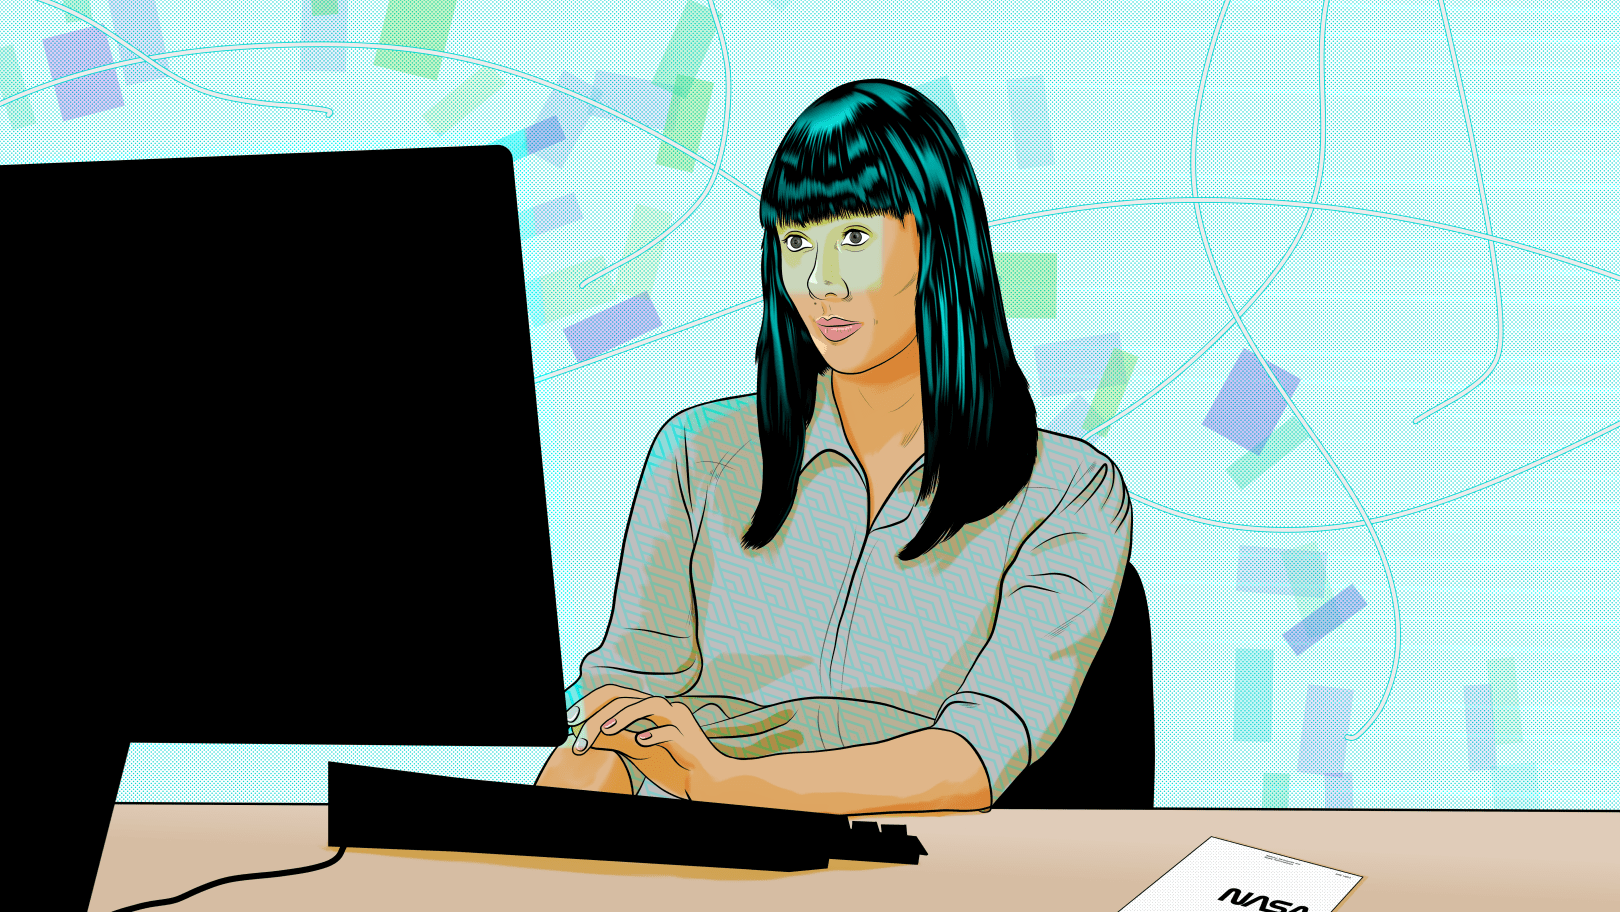 three-quarters profile view of South Korean Woman sitting at her desktop computer while doing research. Illustrated by Alonso Guzmán Barone.